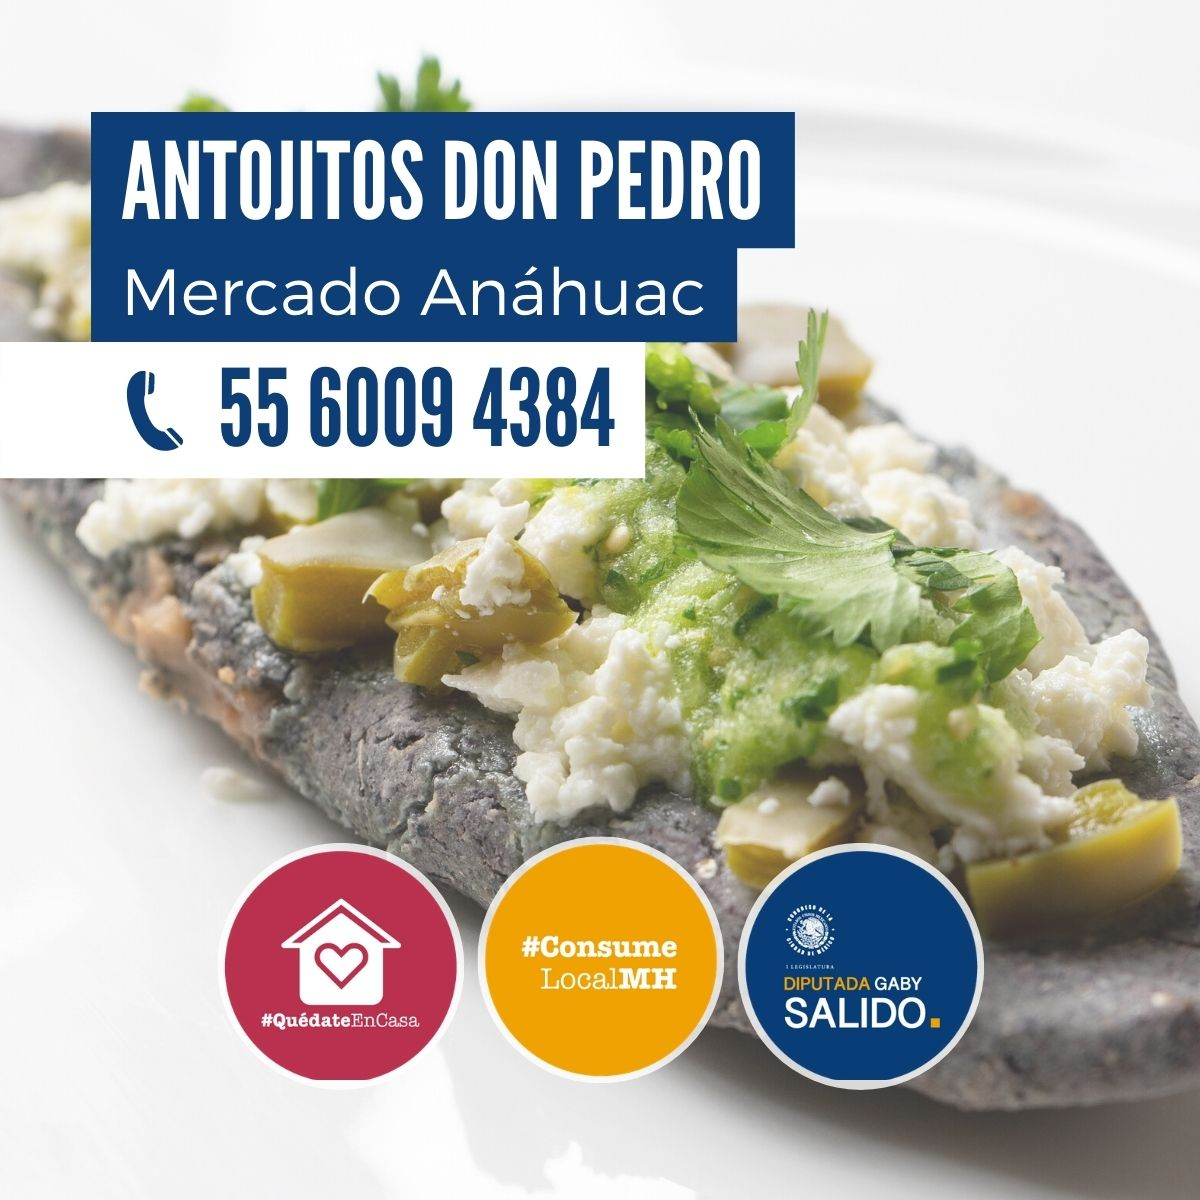 Antojitos Don Pedro